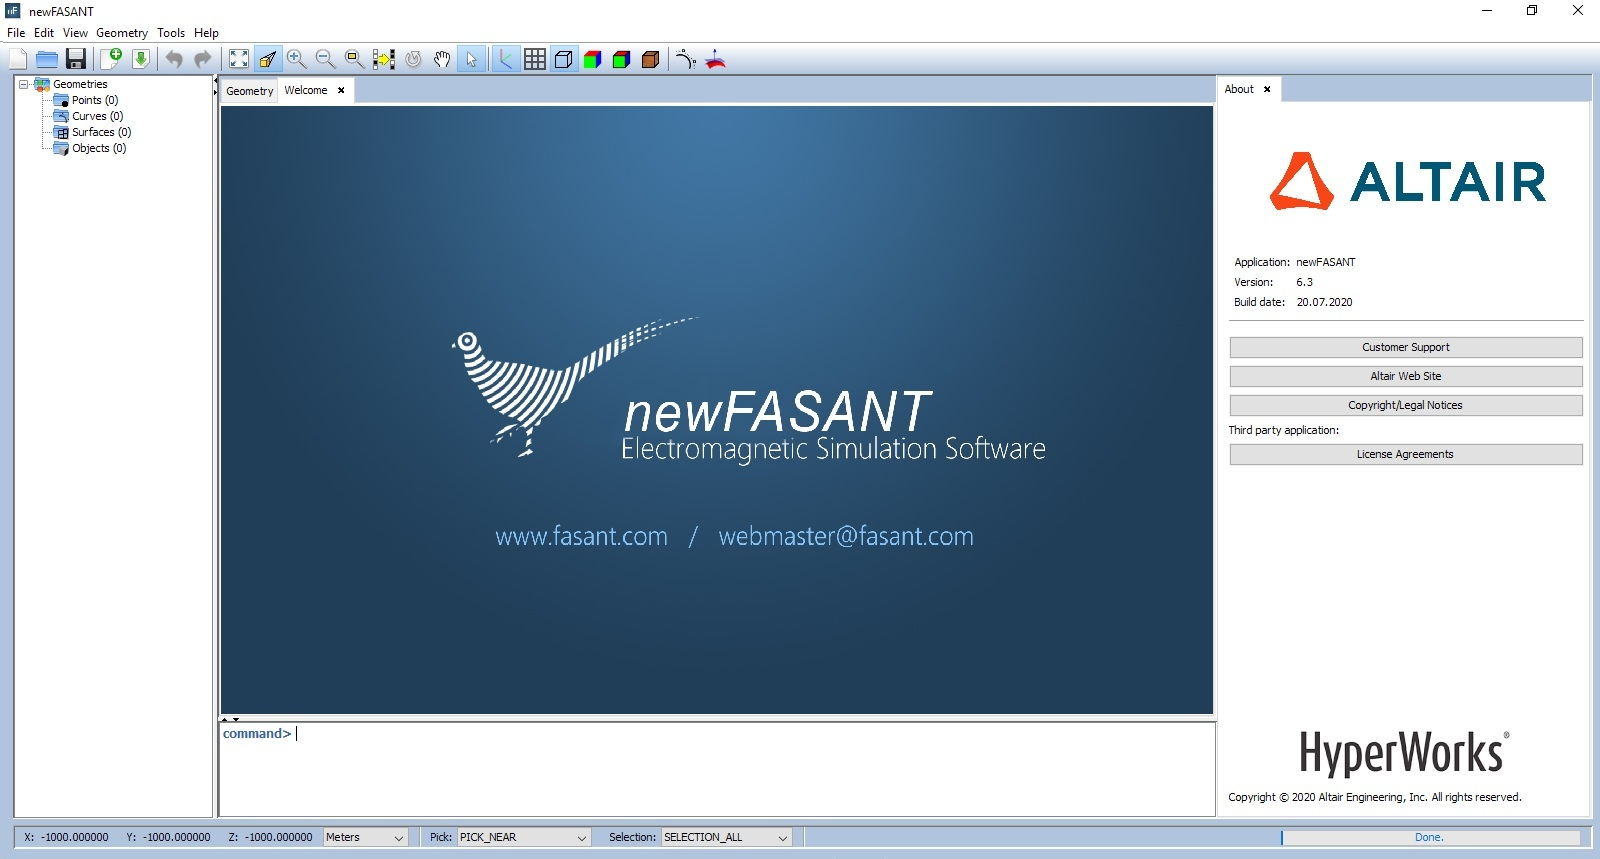 Working with Altair newFASANT 6.3.2020.07.20 full